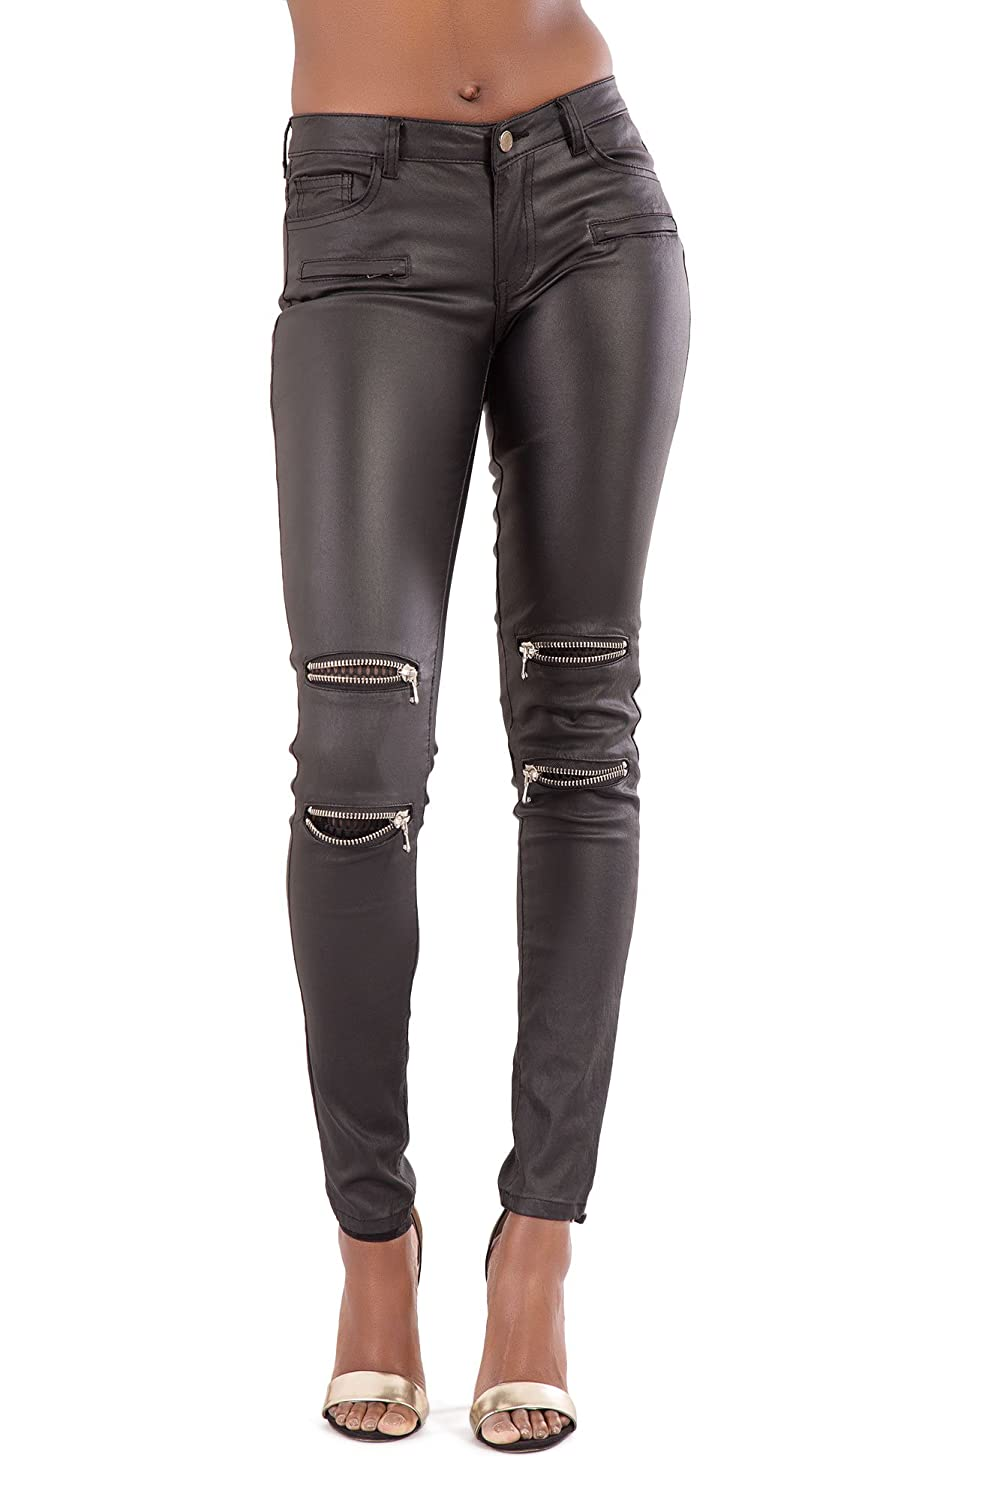 6183265dbc2 Womens Sexy High Waisted Biker Style Faux Leater Wet Look Shapewear Trousers  Pants-L  Amazon.co.uk  Clothing